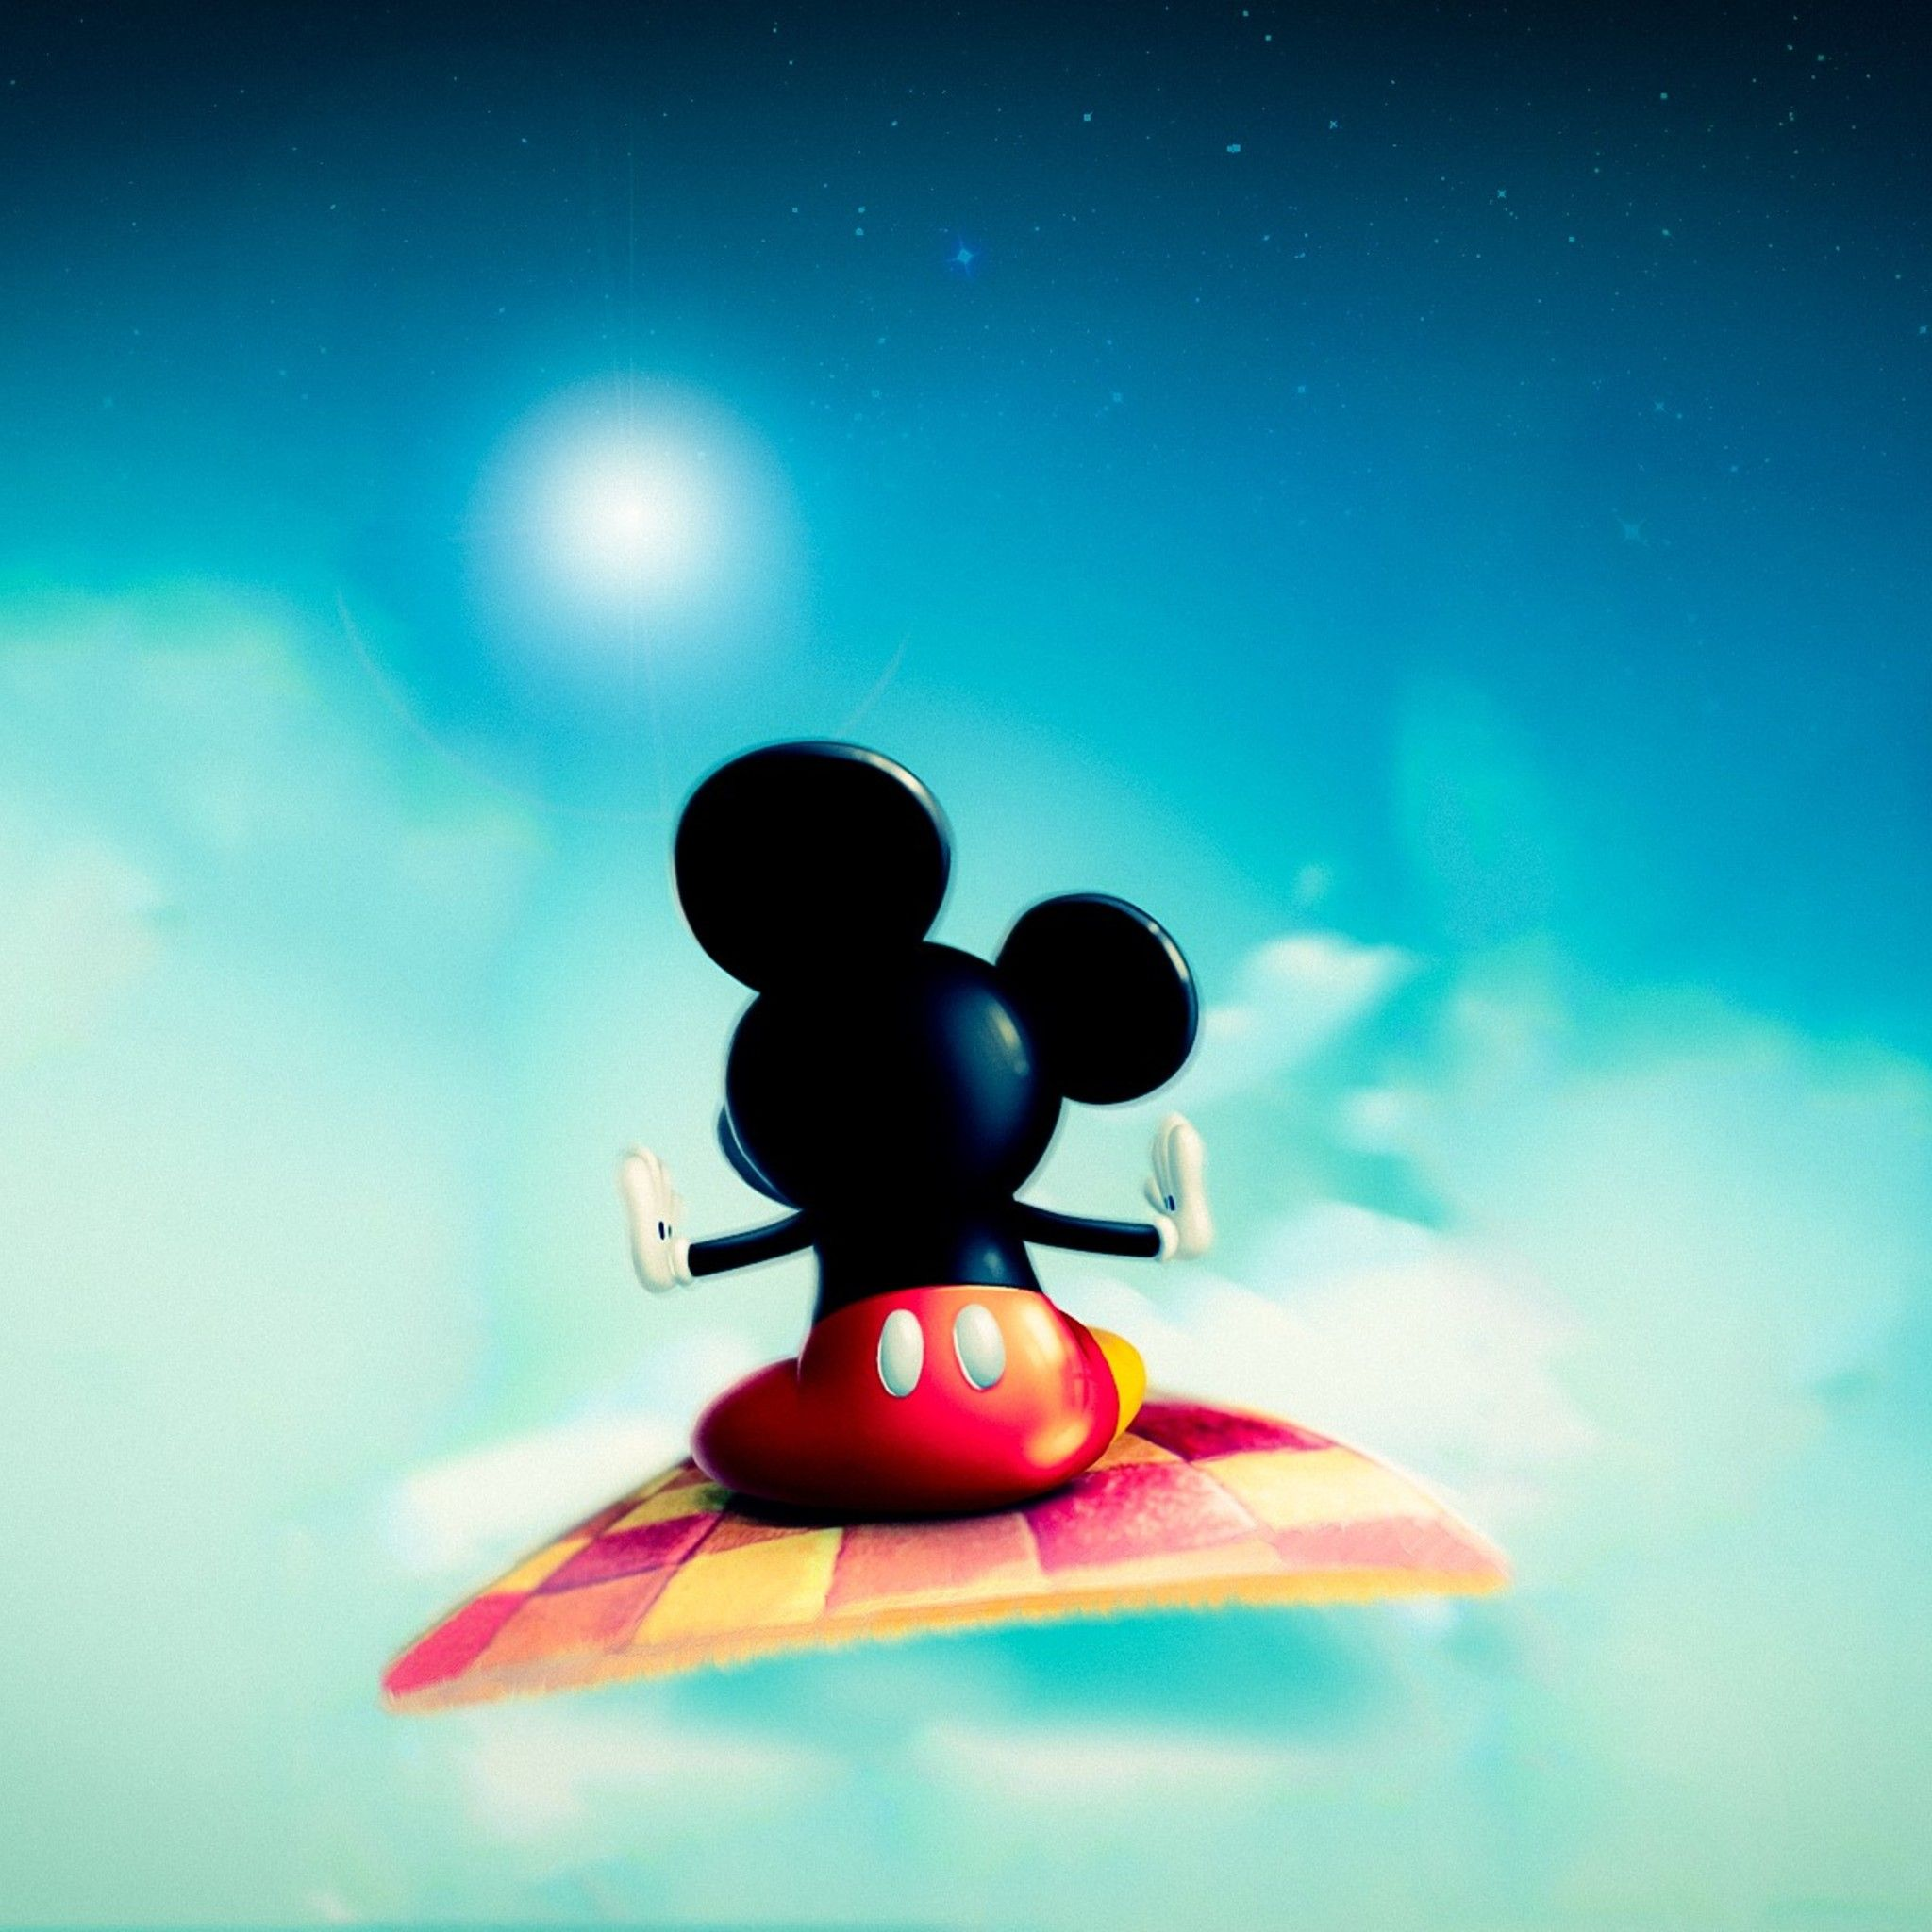 Mickey Mouse Ipad Wallpapers Top Free Mickey Mouse Ipad Backgrounds Wallpaperaccess